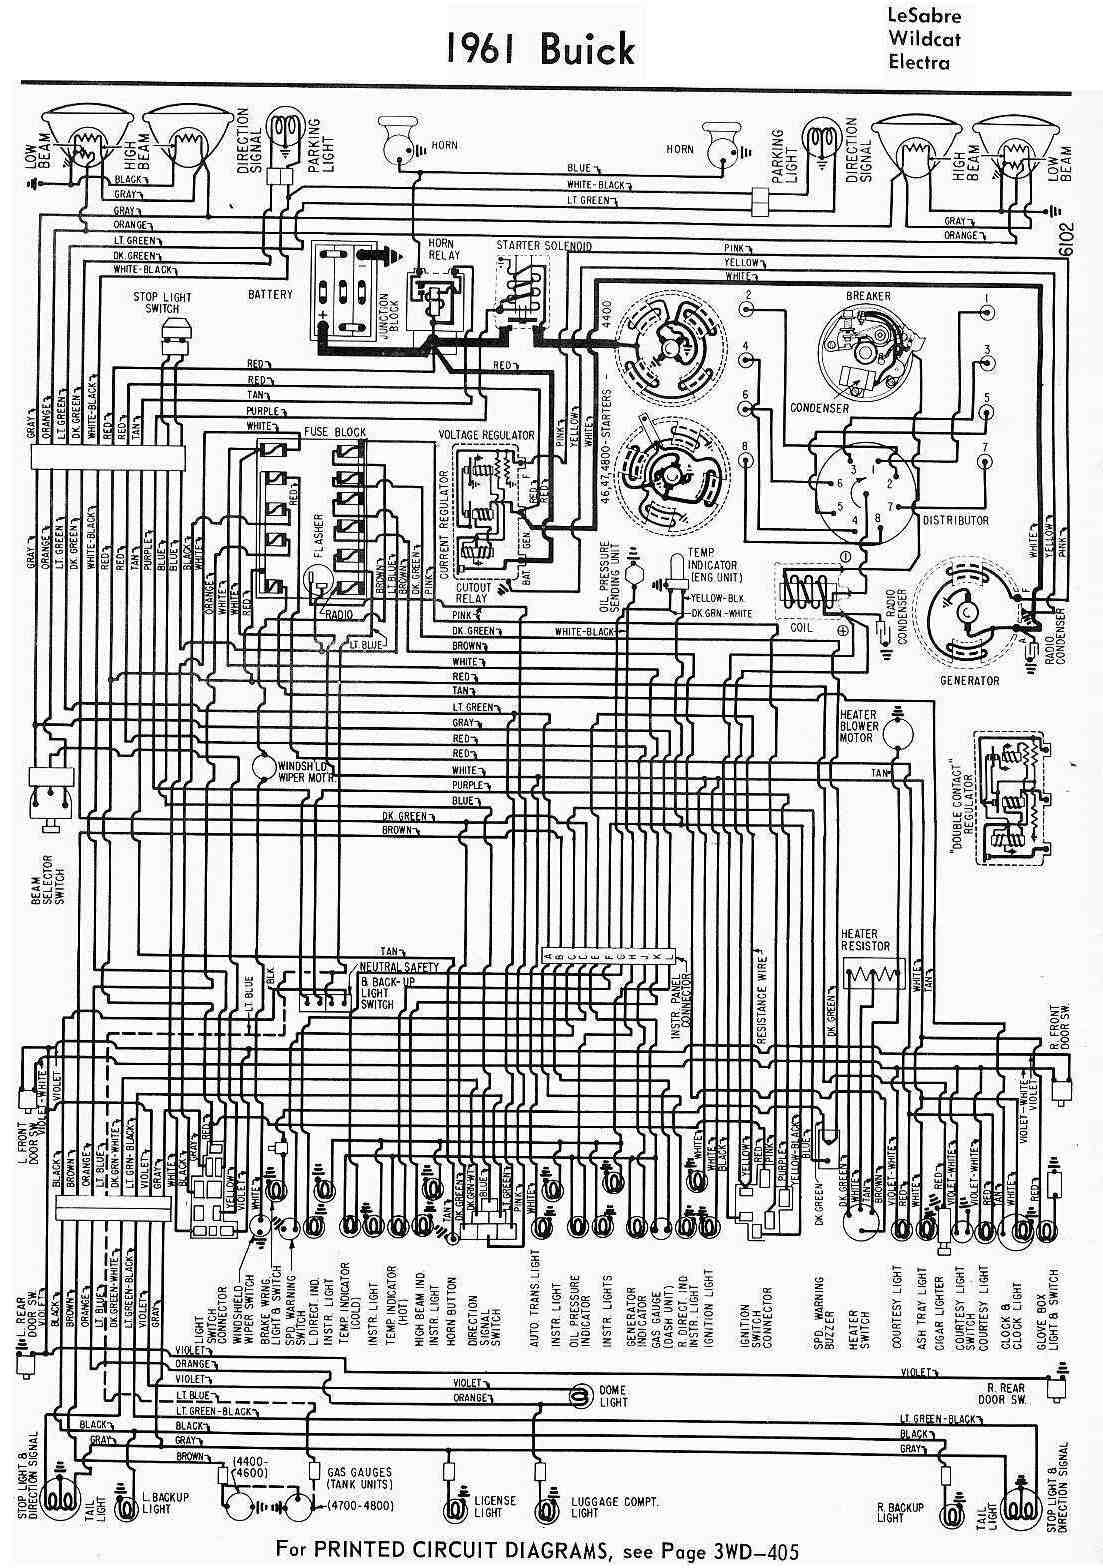 DIAGRAM] 2001 Buick Lesabre Engine Diagram Wiring Schematic FULL Version HD  Quality Wiring Schematic - MUSCLEDIAGRAMS.JEPIX.FRmusclediagrams.jepix.fr